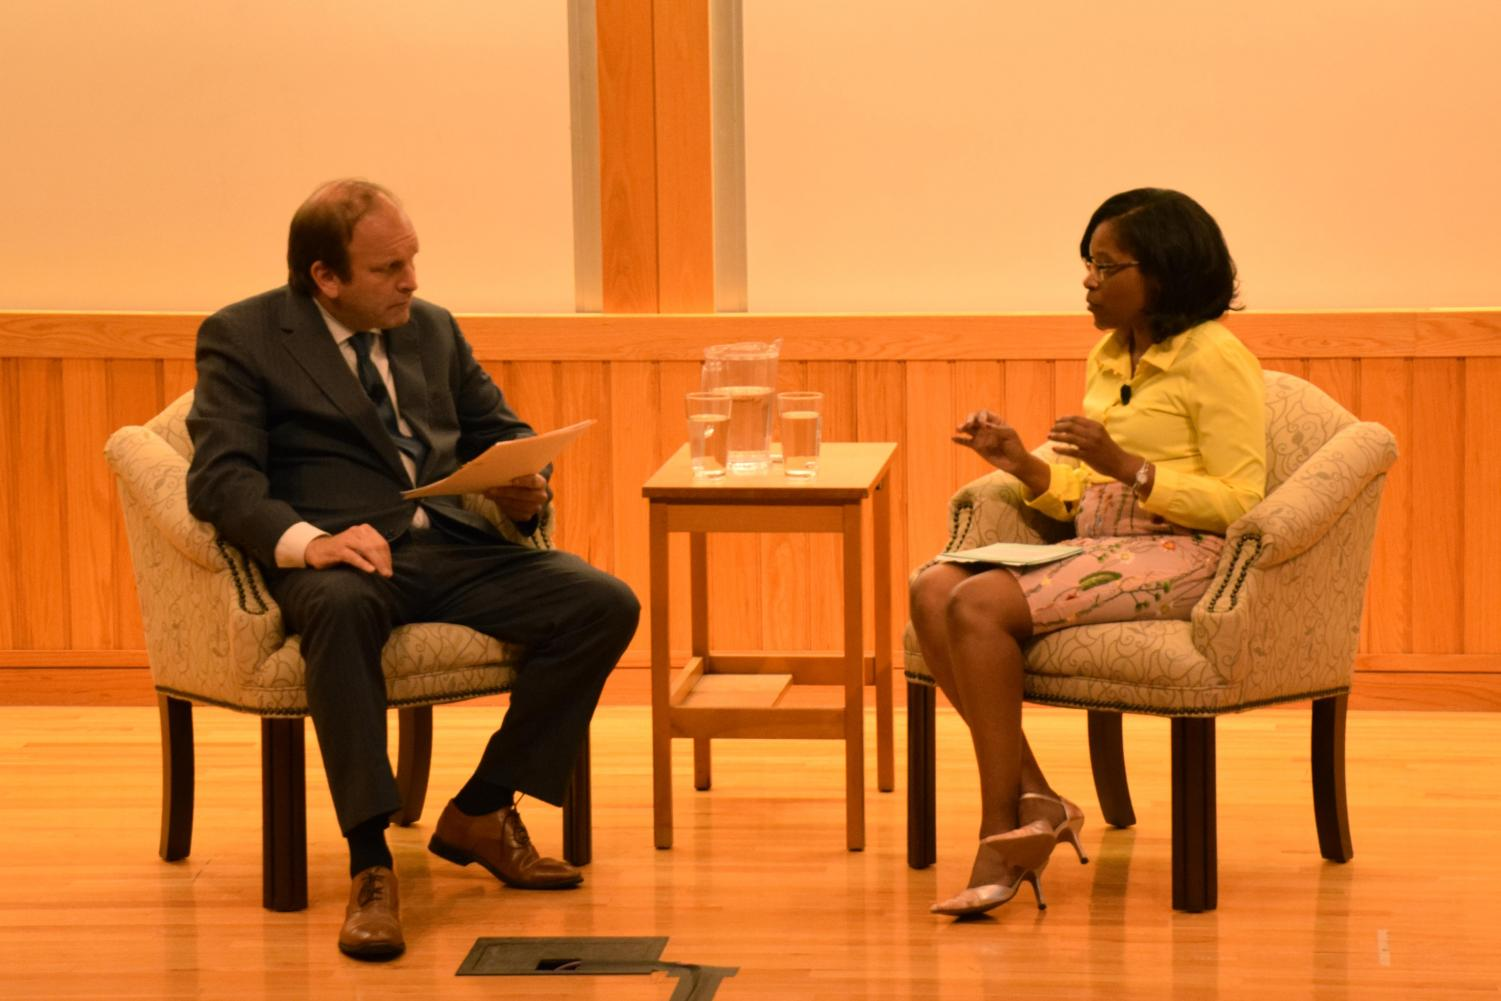 Ohio Supreme Court Justice Pat DeWine and Oberlin Vice President, General Counsel, and Secretary Donica Thomas Varner converse about the First Amendment on Constitution Day.